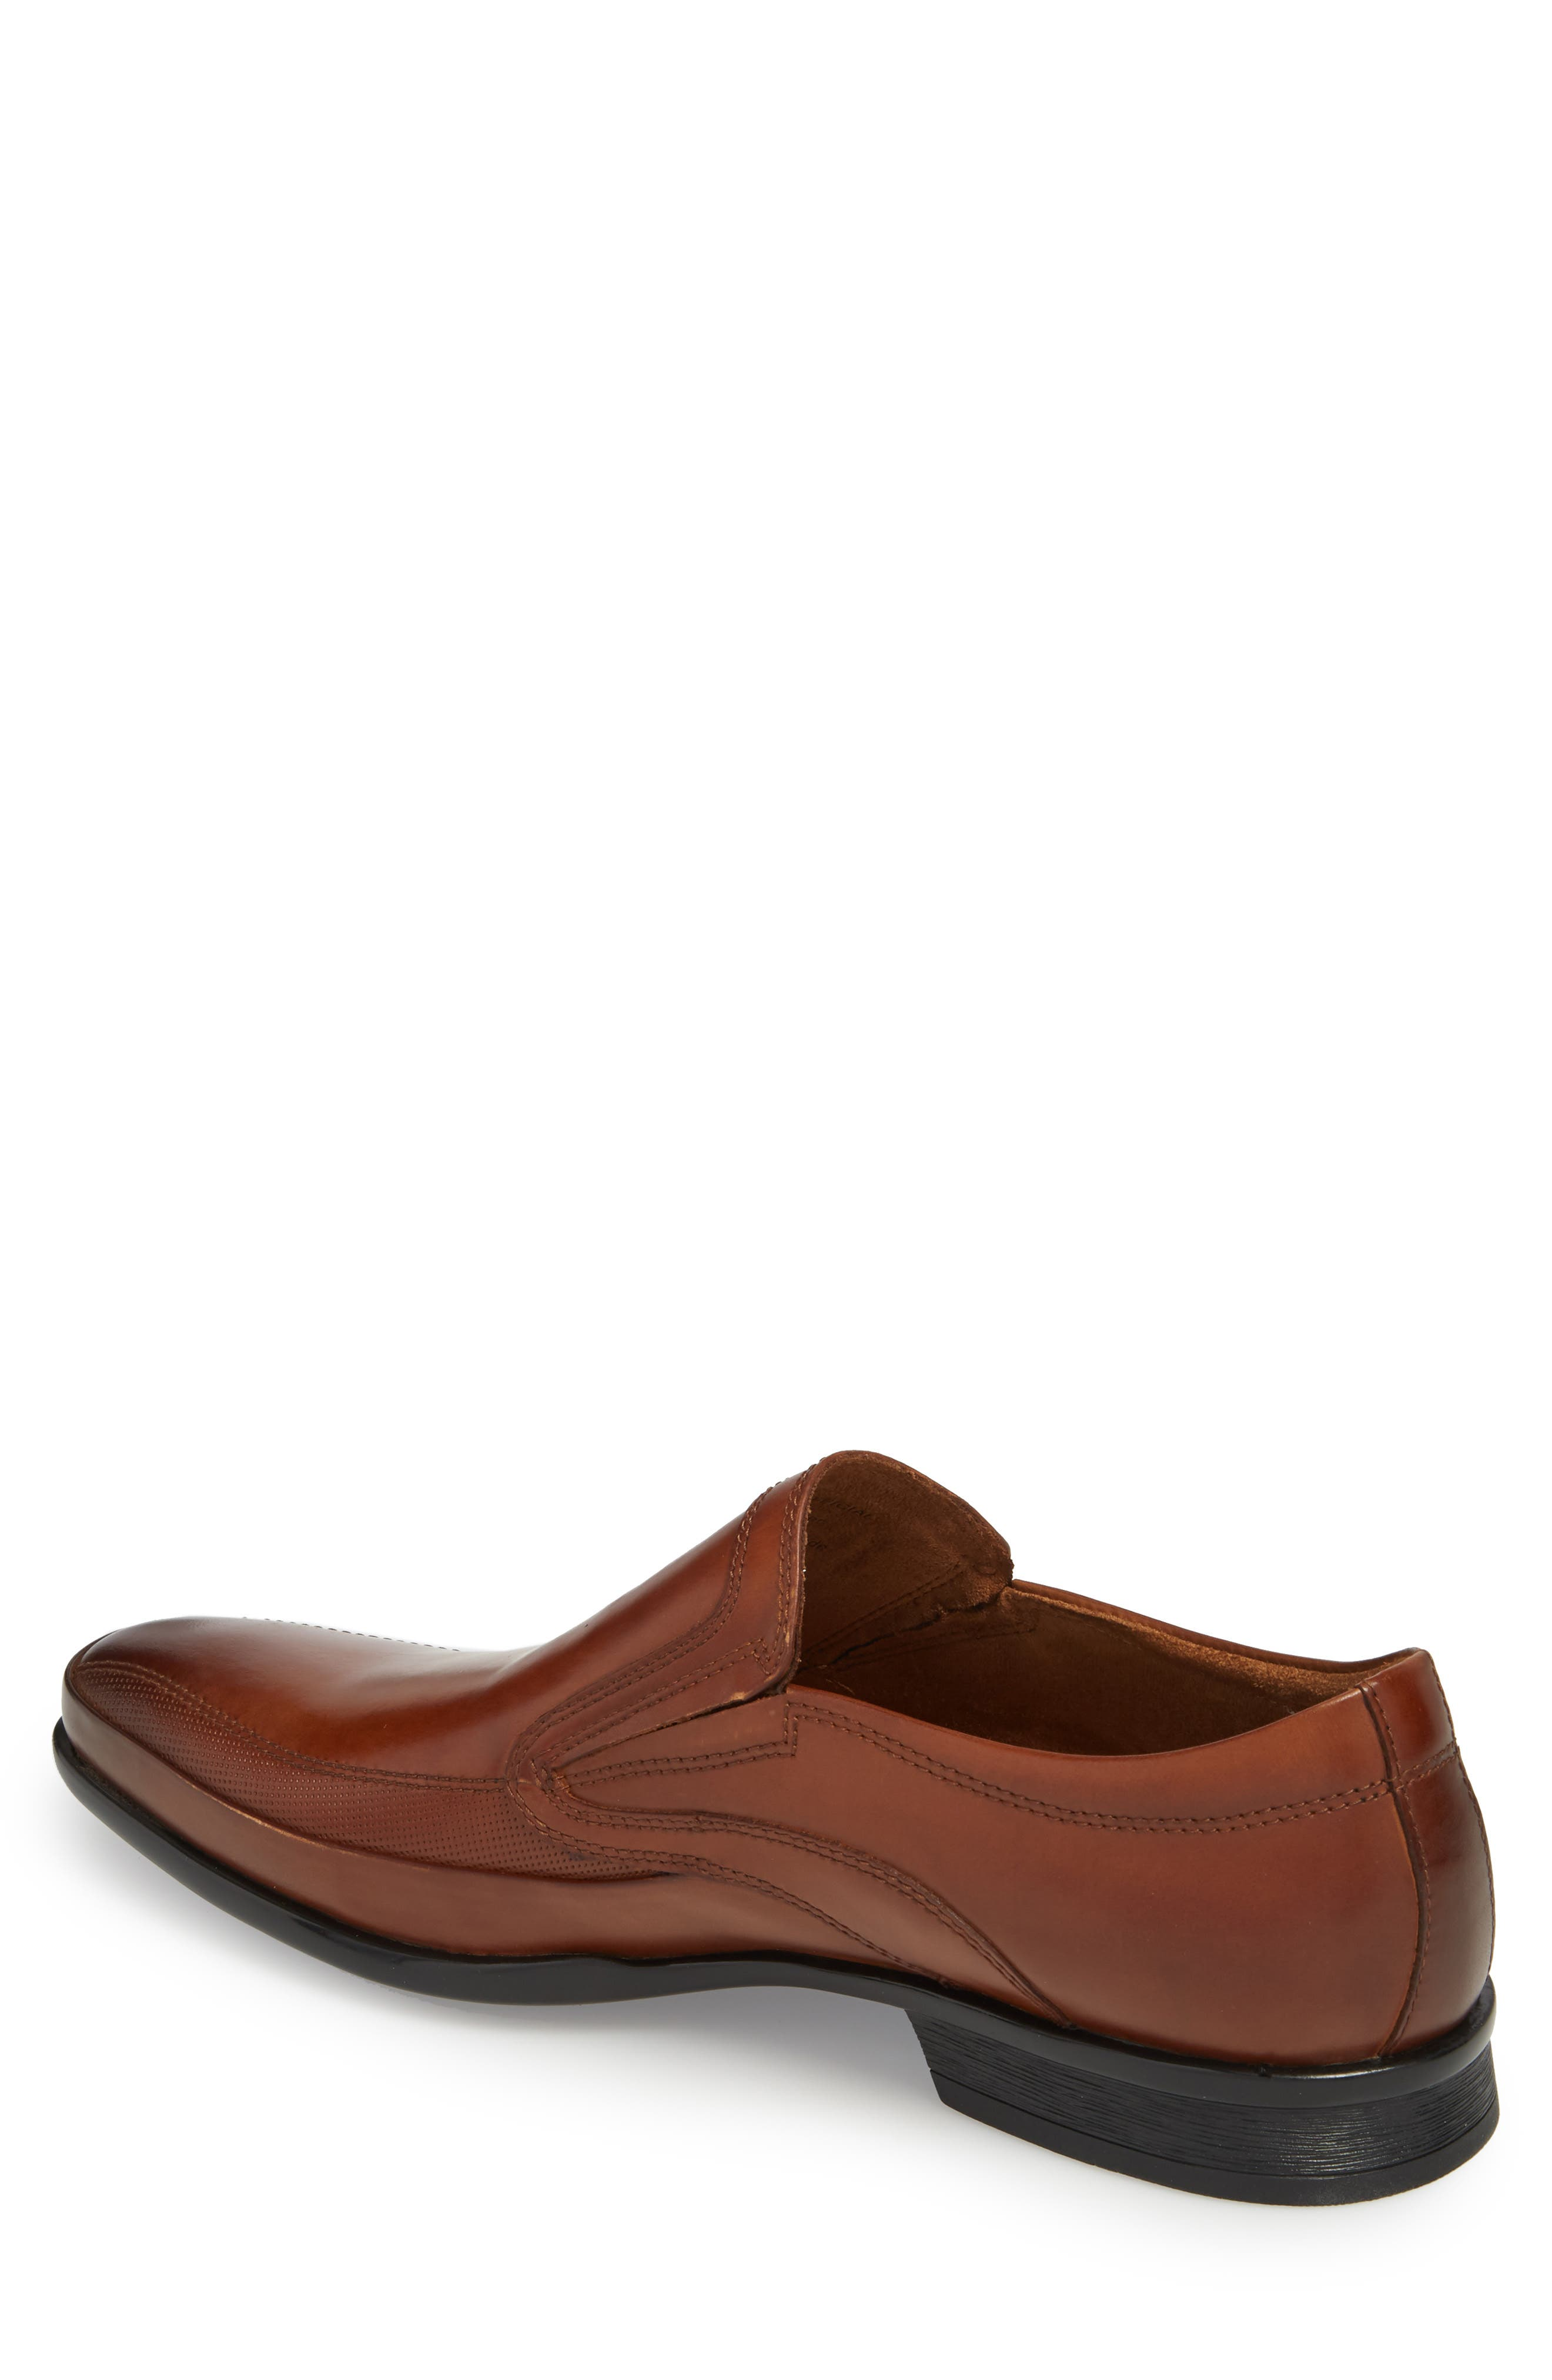 'Extra Official' Venetian Loafer,                             Alternate thumbnail 2, color,                             COGNAC LEATHER